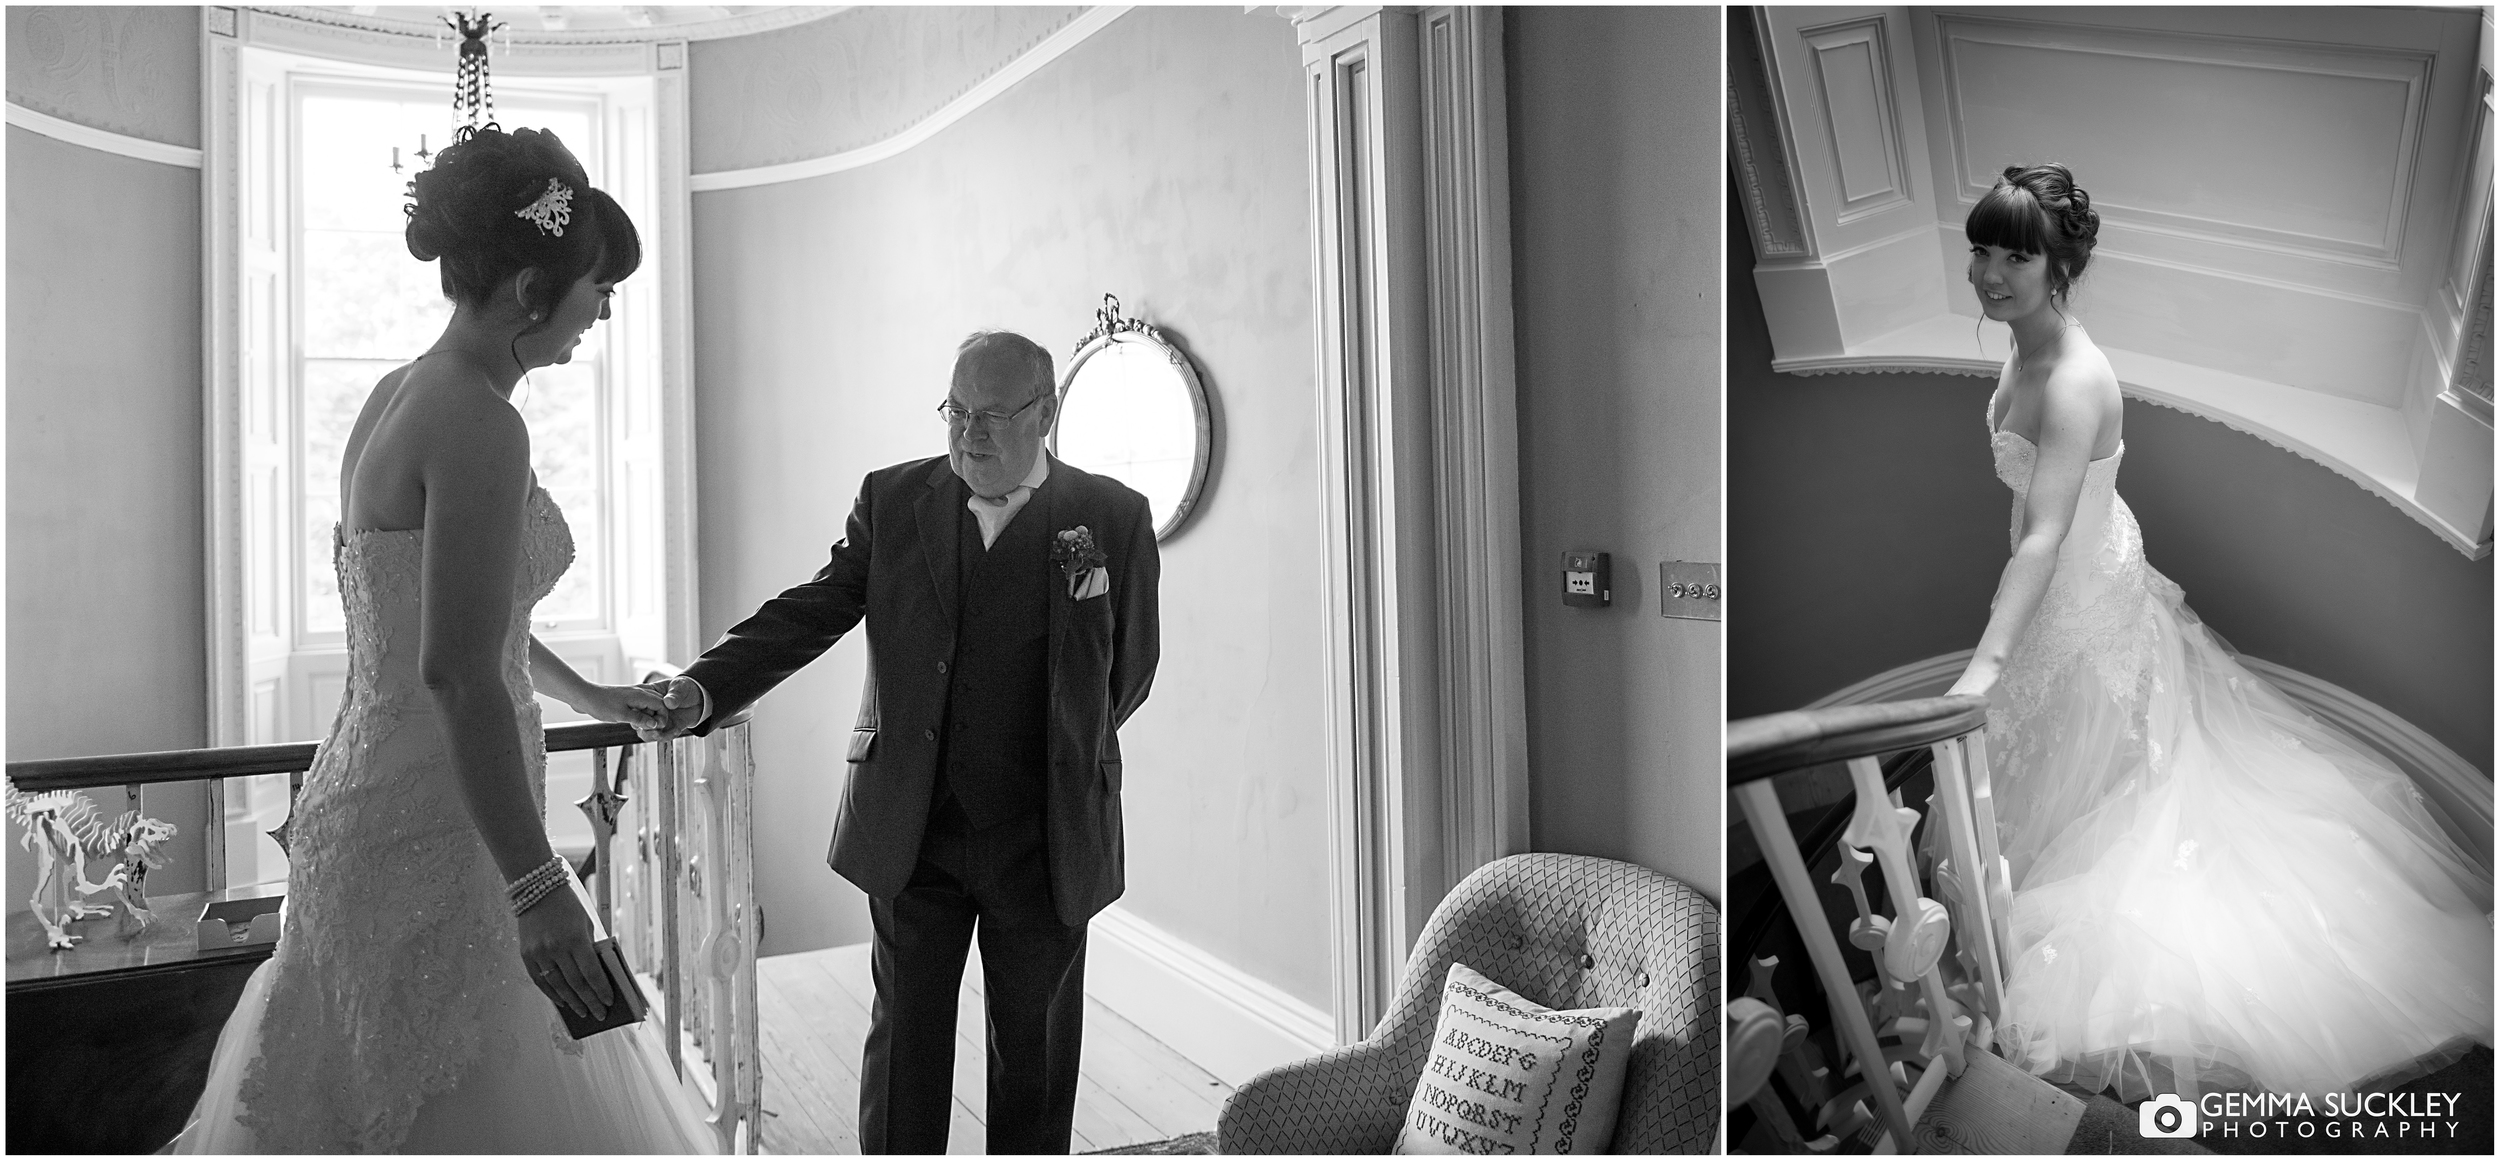 bride-and-father-photo-gemma-suckley-photography.jpg